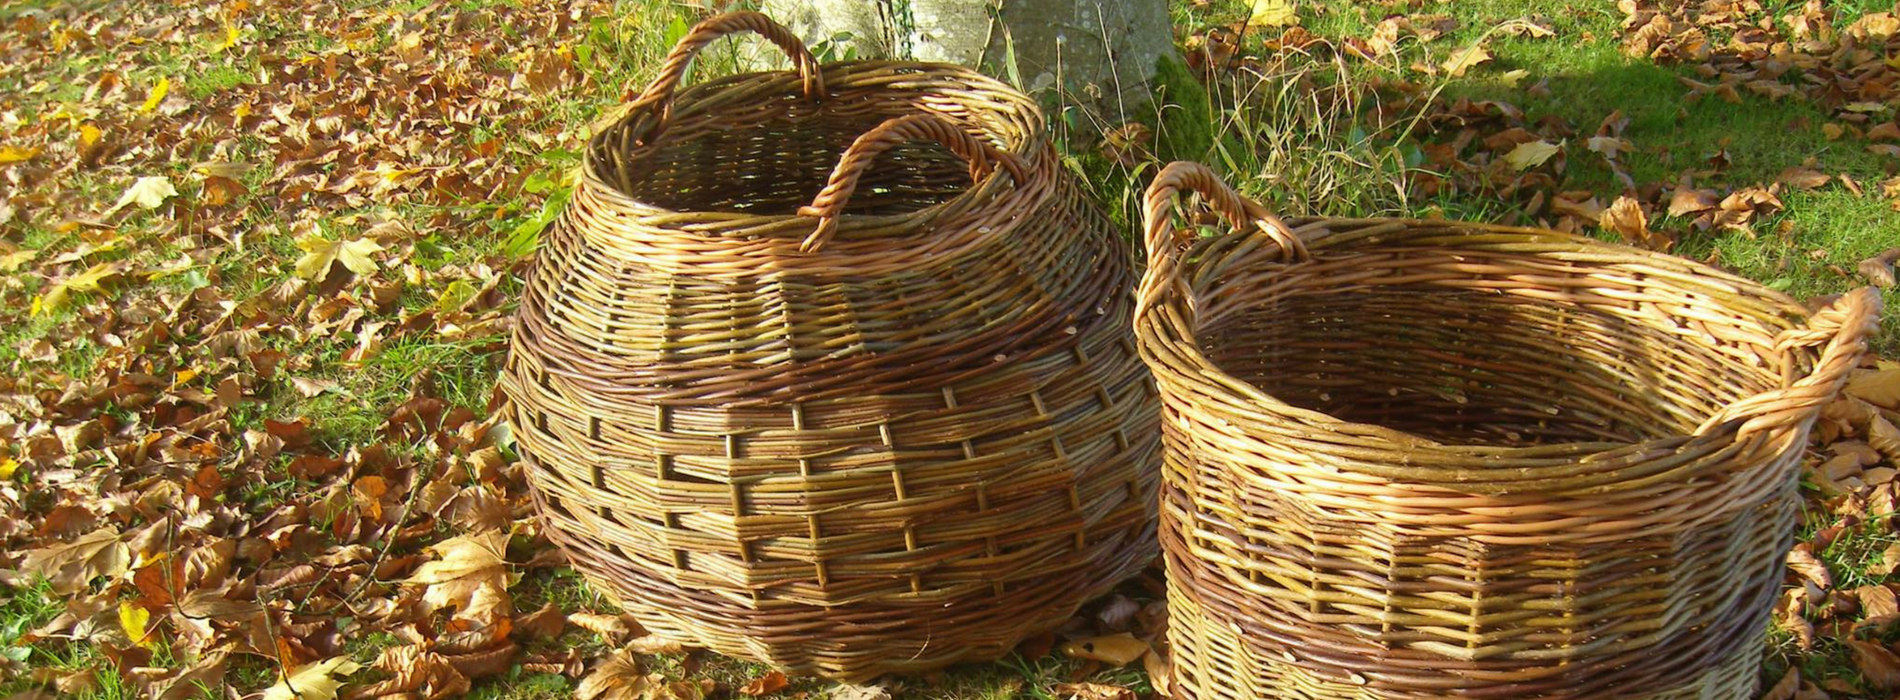 Willow Baskets Wyldwood Willow